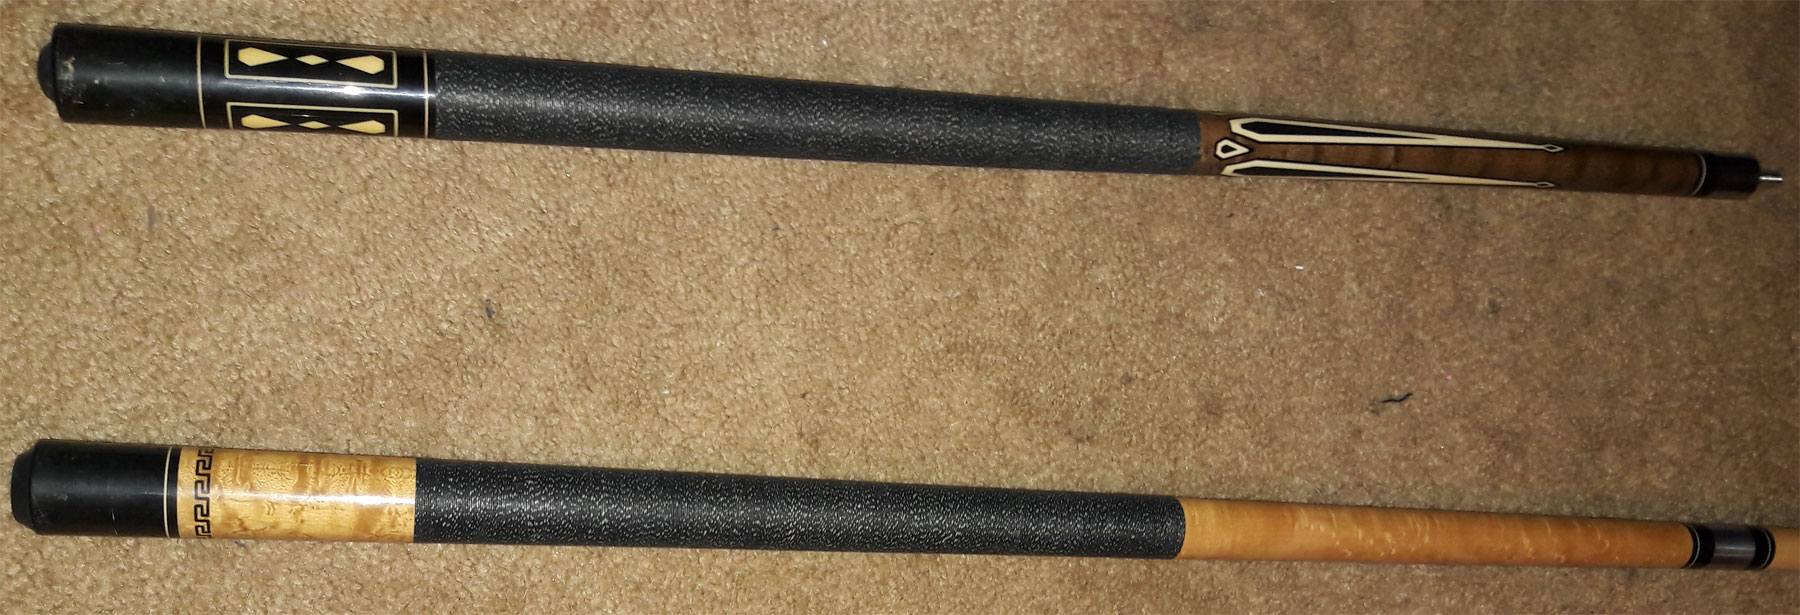 Mali pool cue identification 3